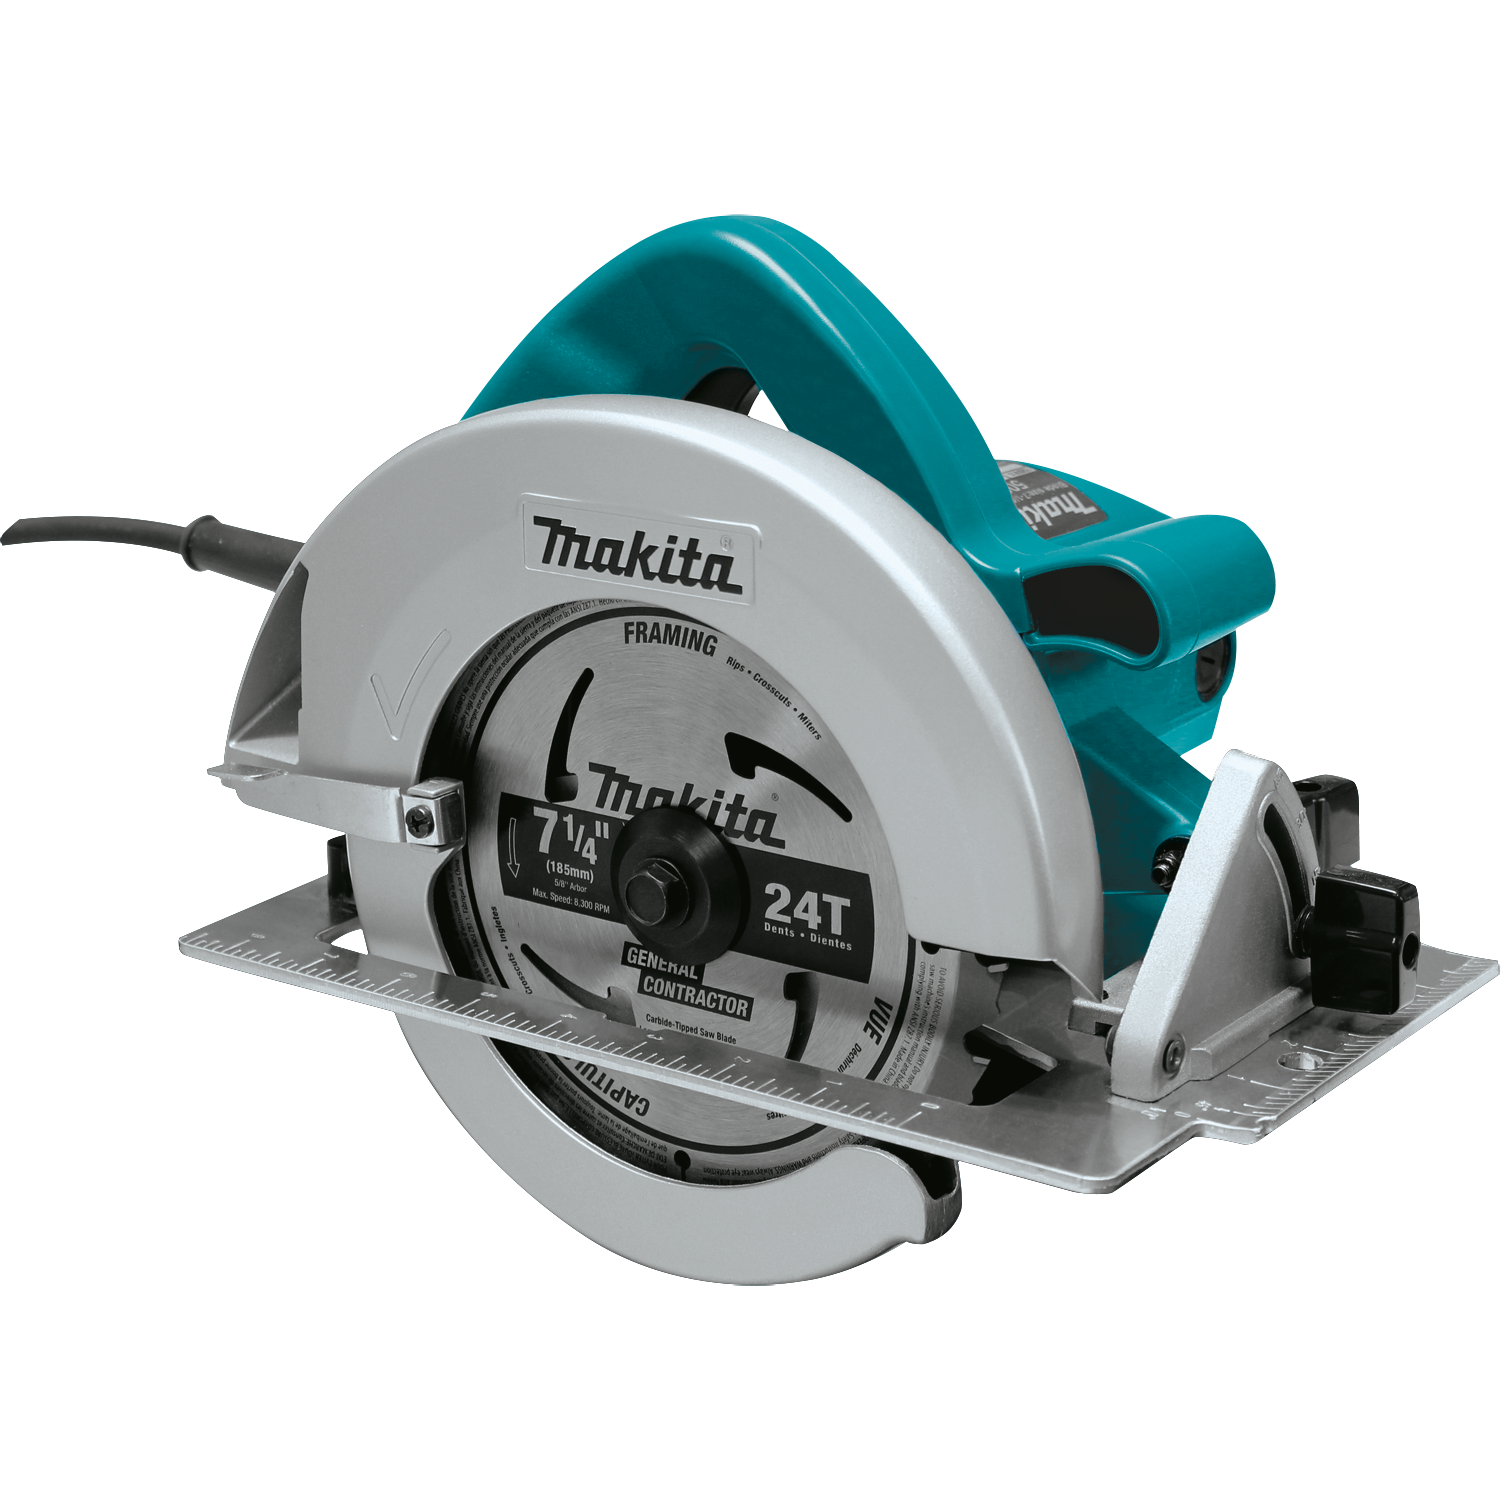 Makita usa product details 5007f 5007f greentooth Images